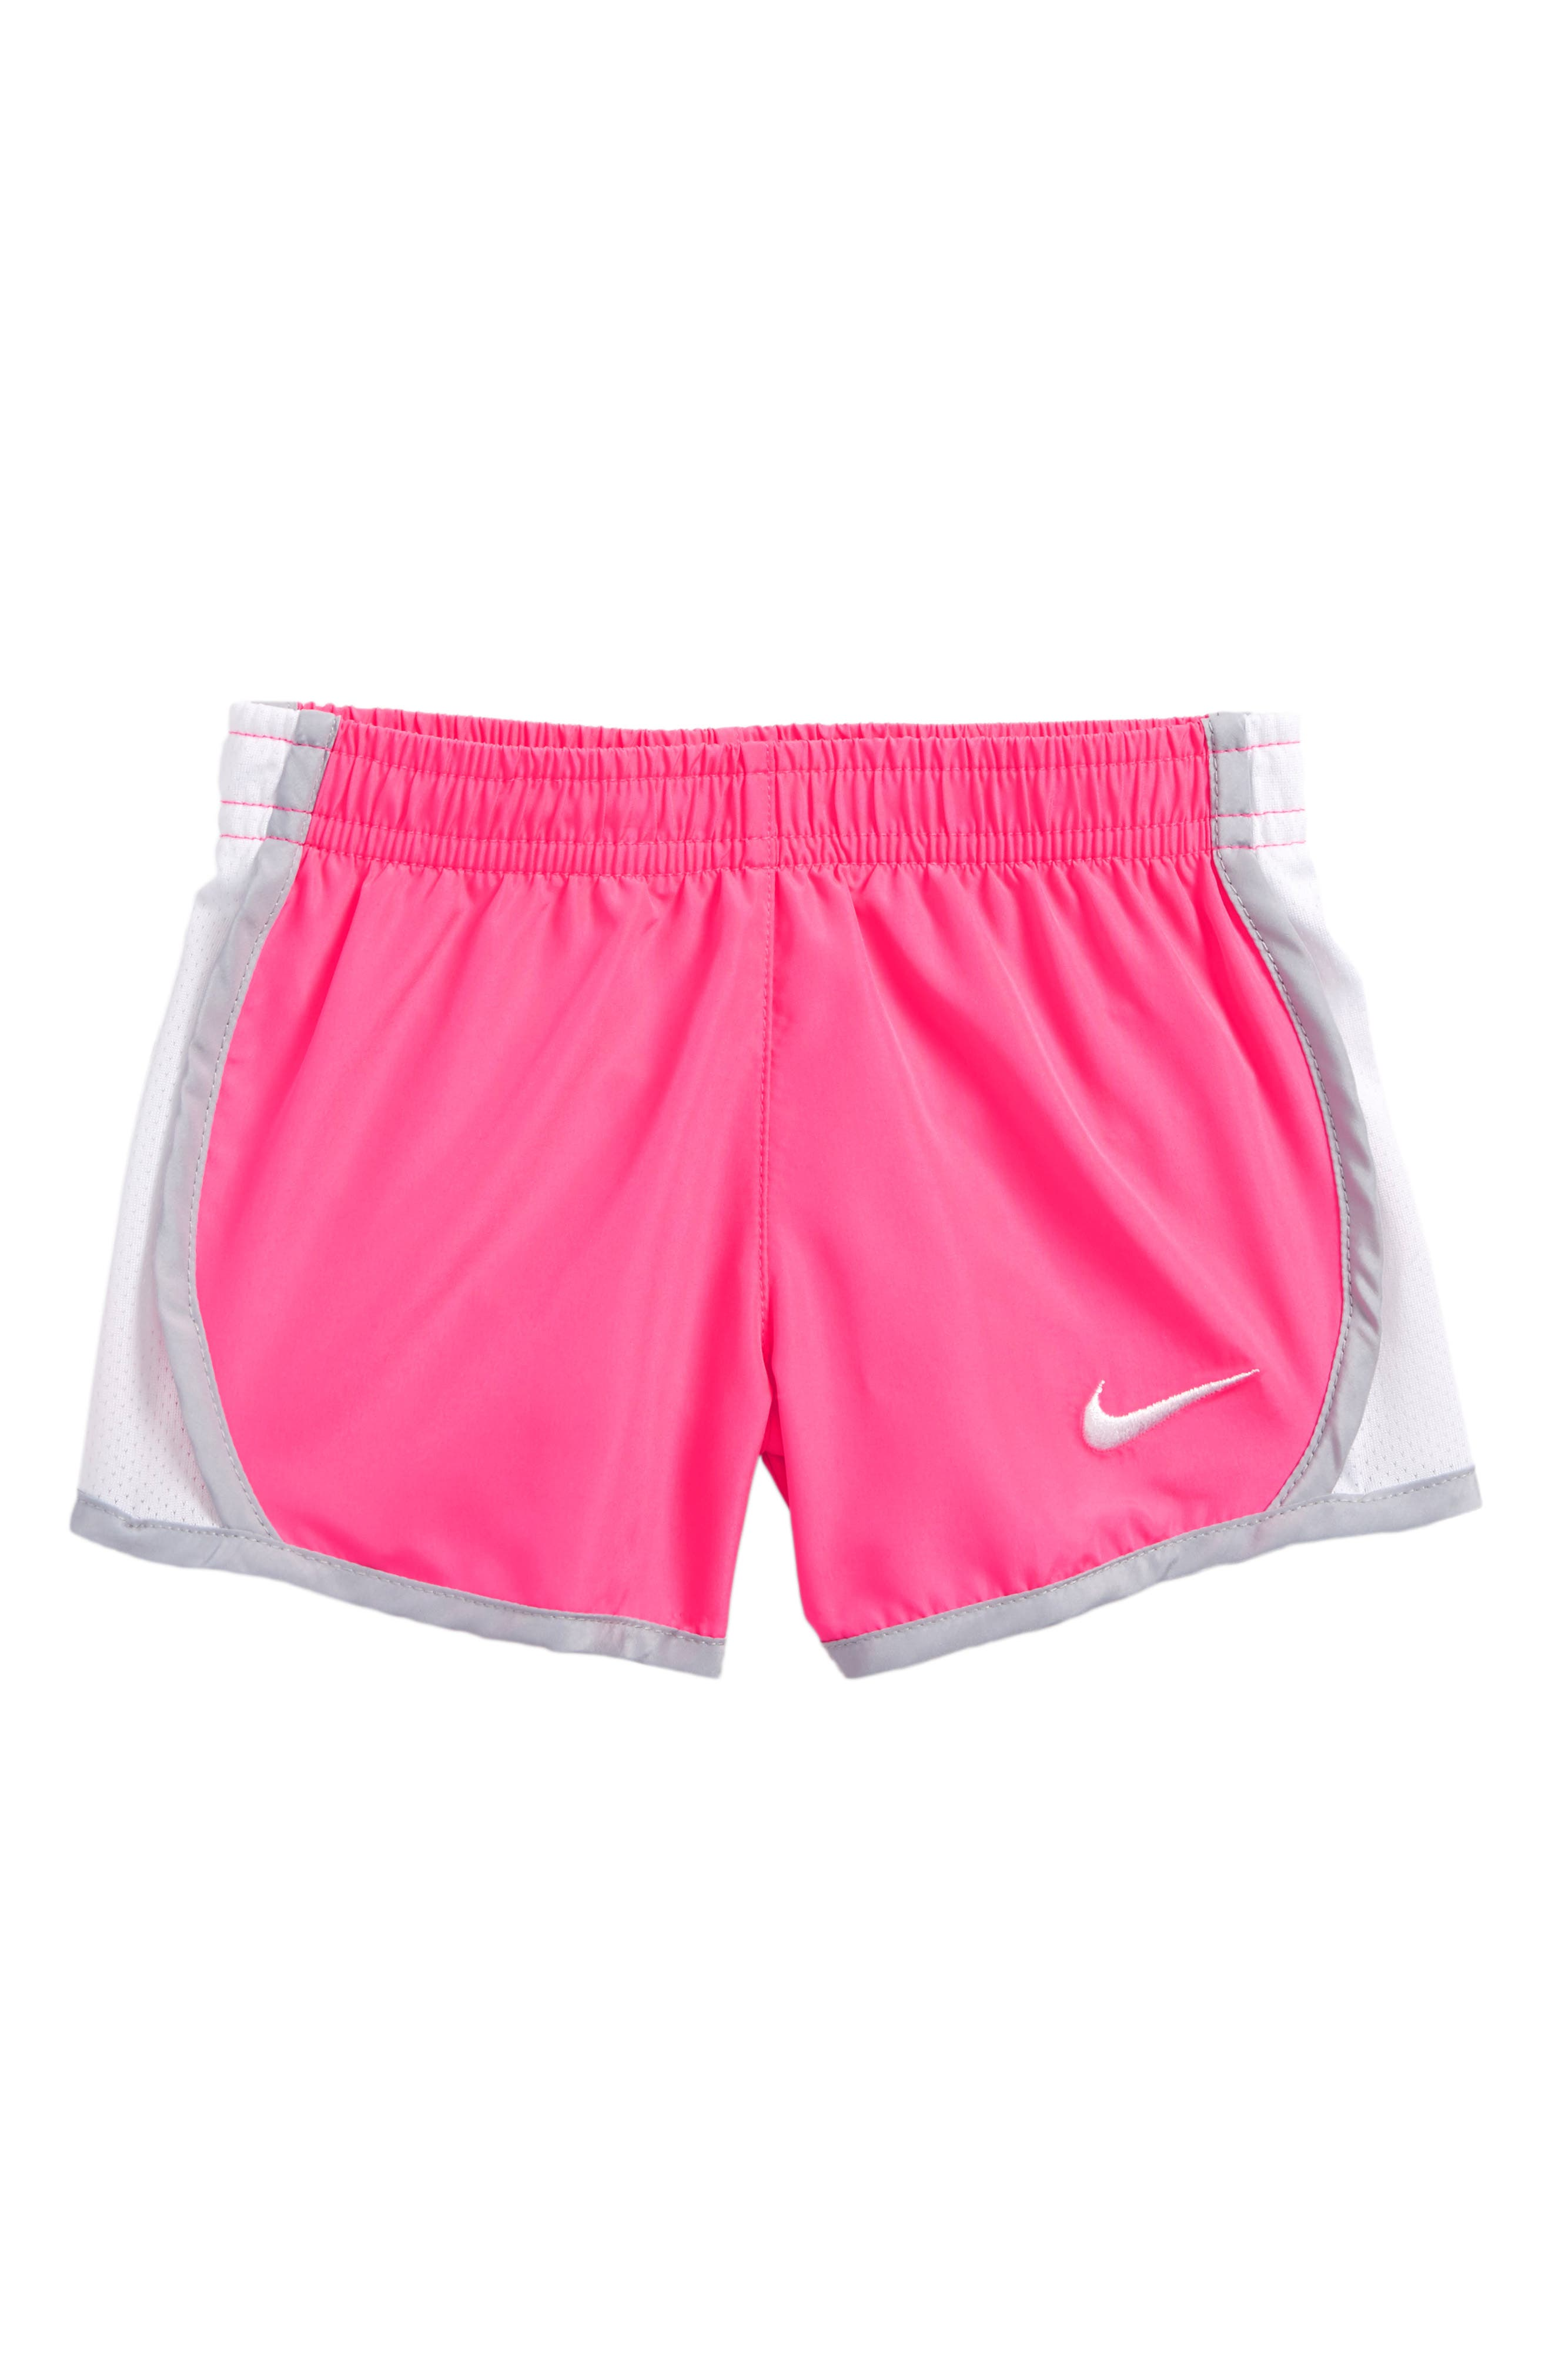 Alternate Image 1 Selected - Nike 'Tempo' Dri-FIT Shorts (Baby Girls)